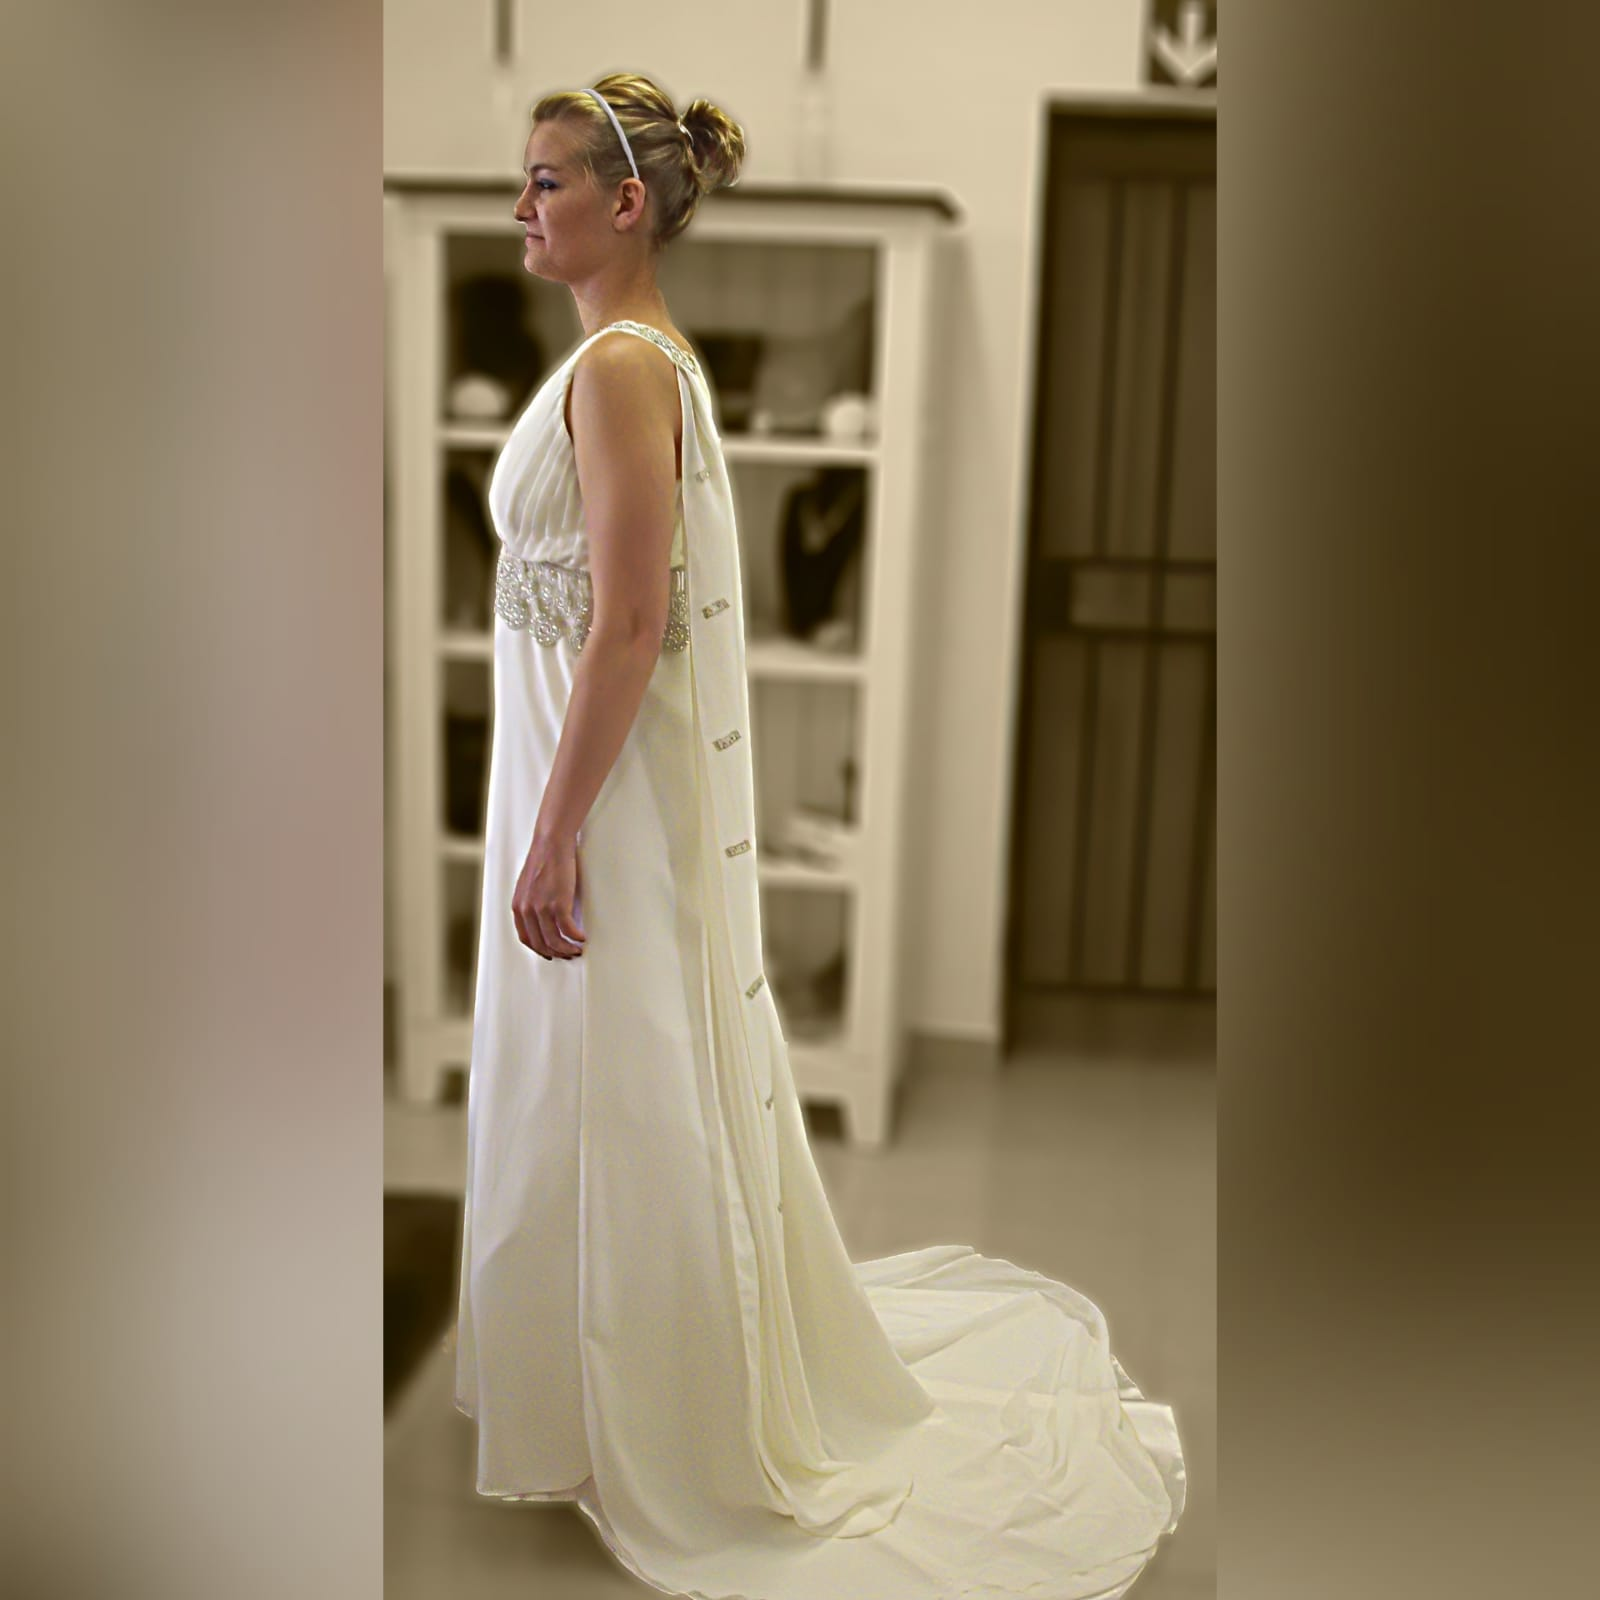 Ivory cross busted wedding dress with train 3 ivory cross busted wedding dress with an added back panel creating a train. Two long shoulder chiffon pieces decorated with bronze embroidery detail and under bust finish this wedding dress off.